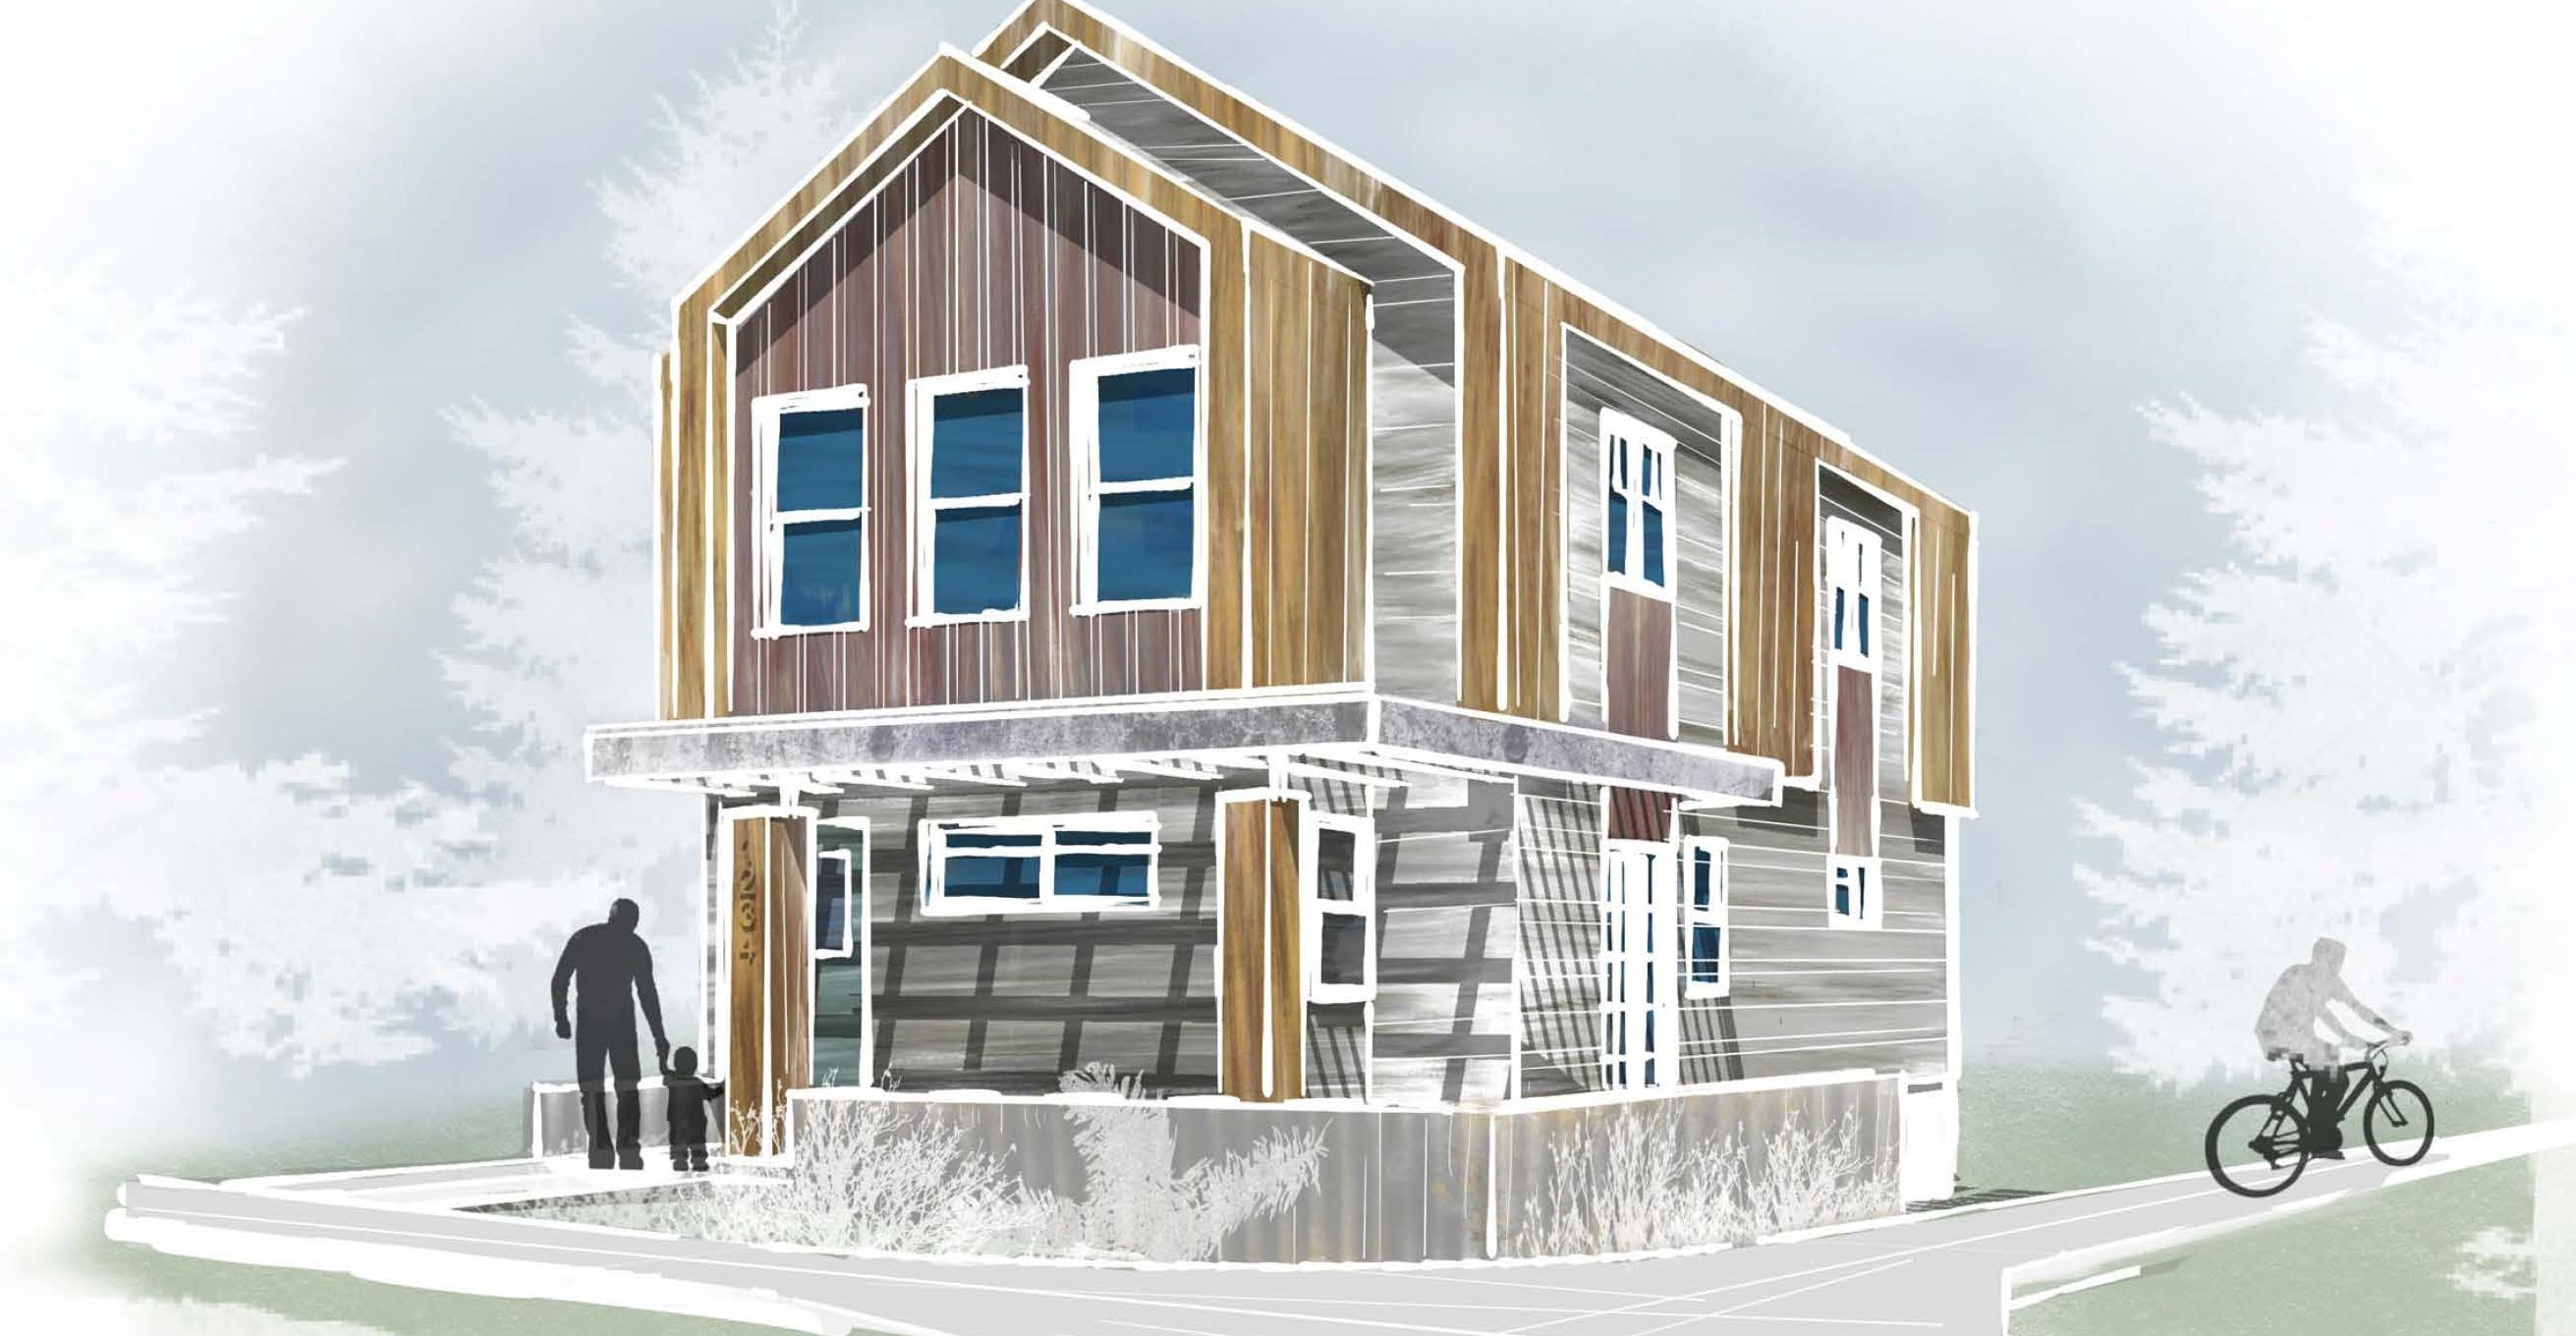 As construction in Silver Creek Village gets underway, its affordable housing does too